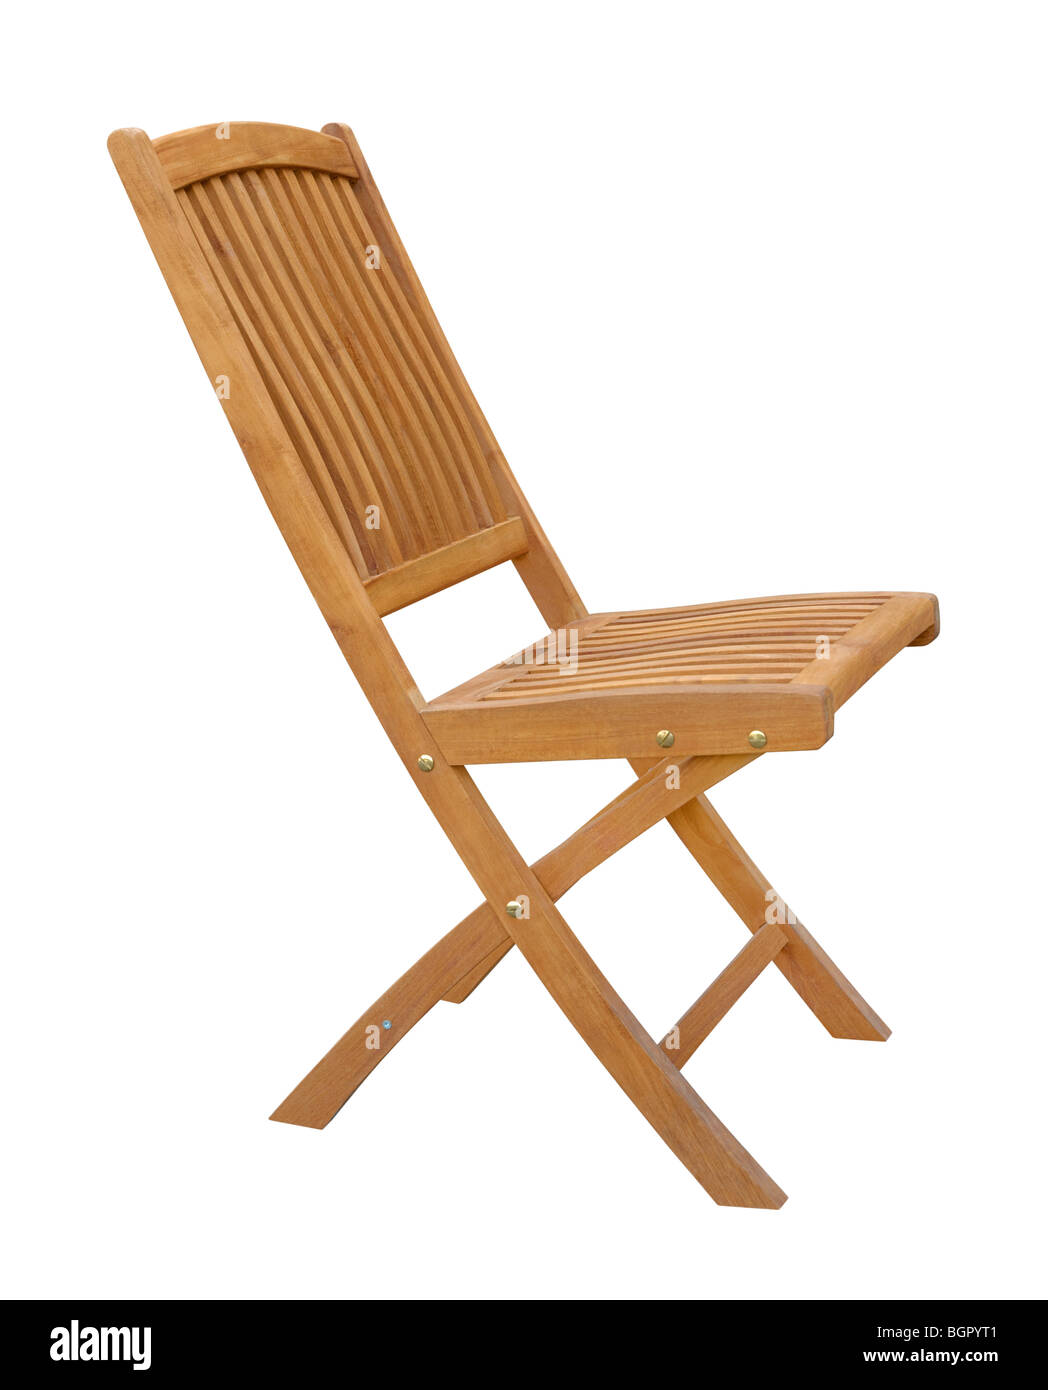 Wooden chair isolated on white background - Stock Image